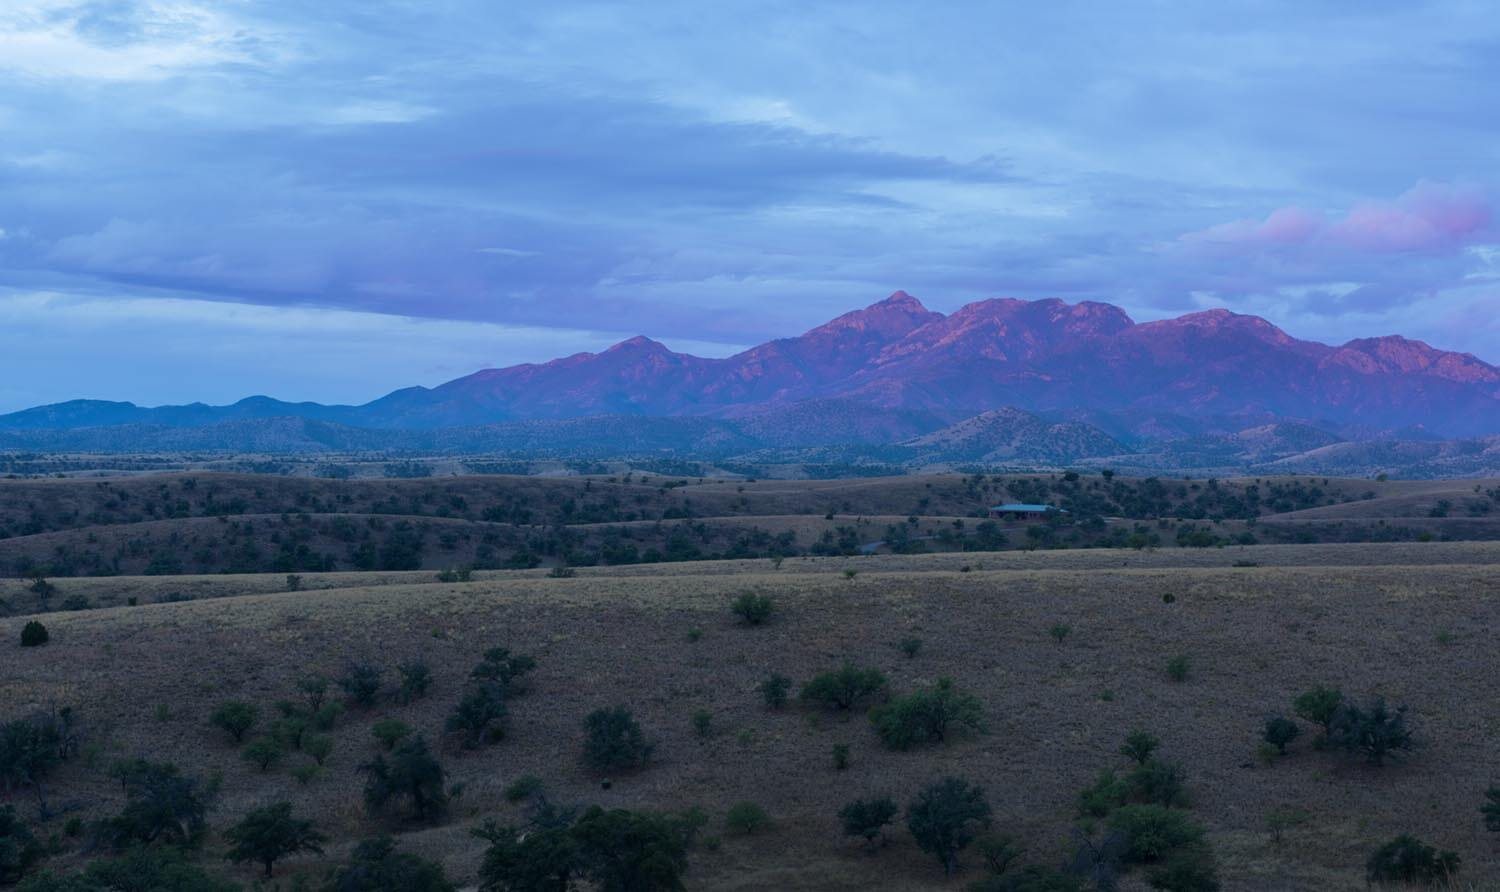 Sunrise on the Santa Rita Mountains north of the  town of Patagonia, Arizona, 18 miles from the U.S.-Mexico border.